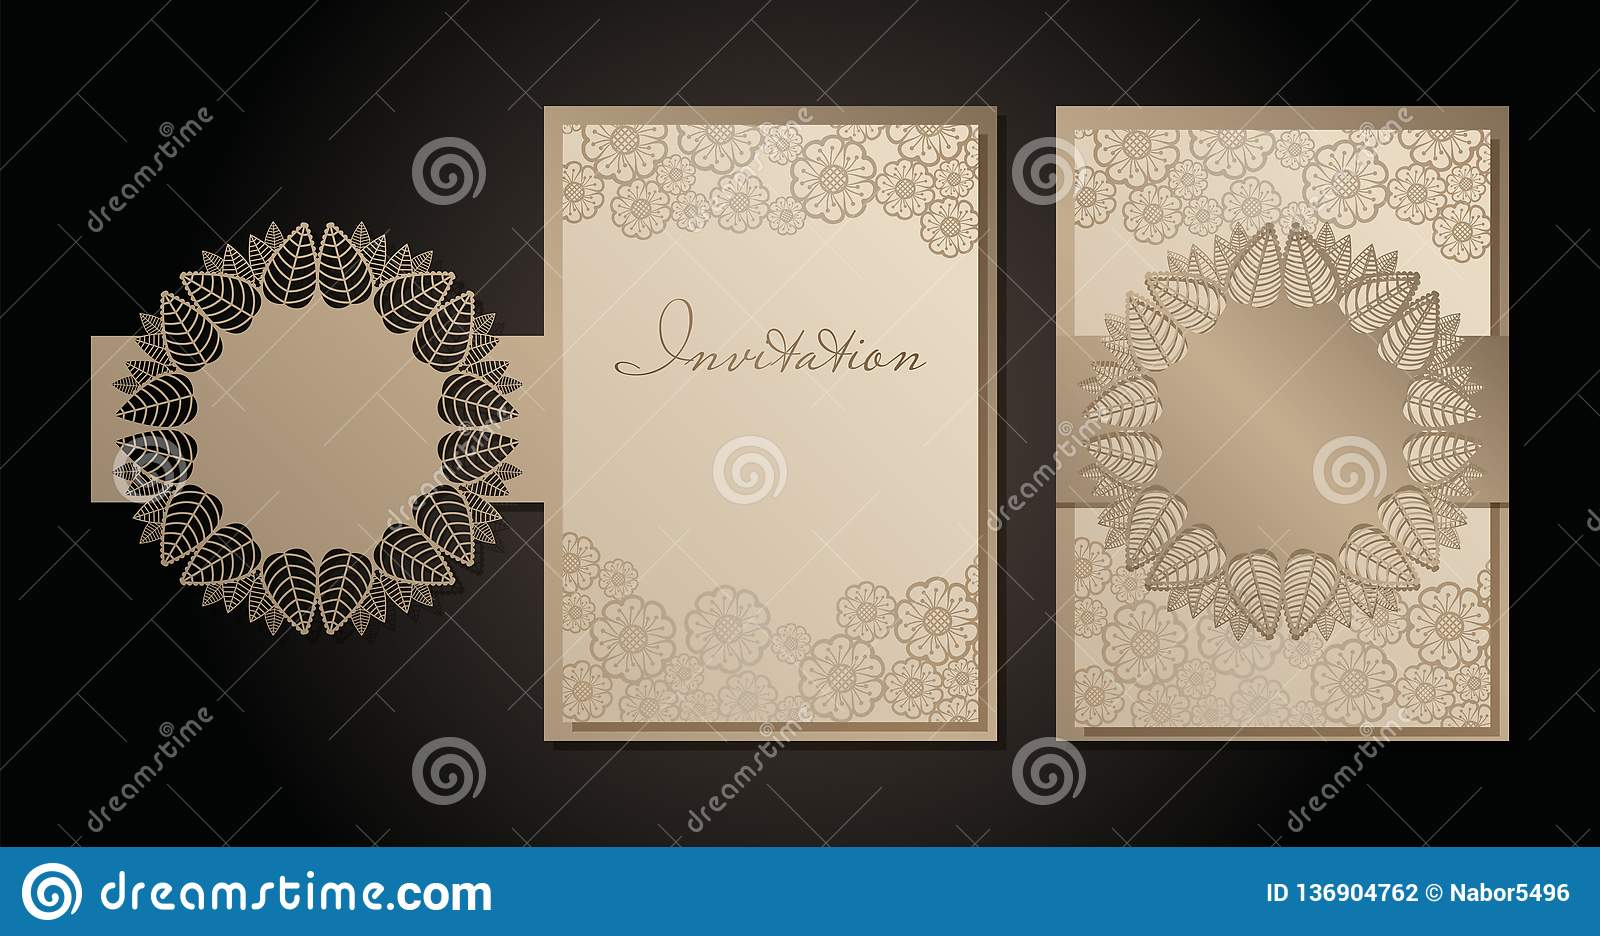 Vintage envelope and invitation for laser cutting. Openwork cover and card design for wedding, Valentine`s Day, romantic